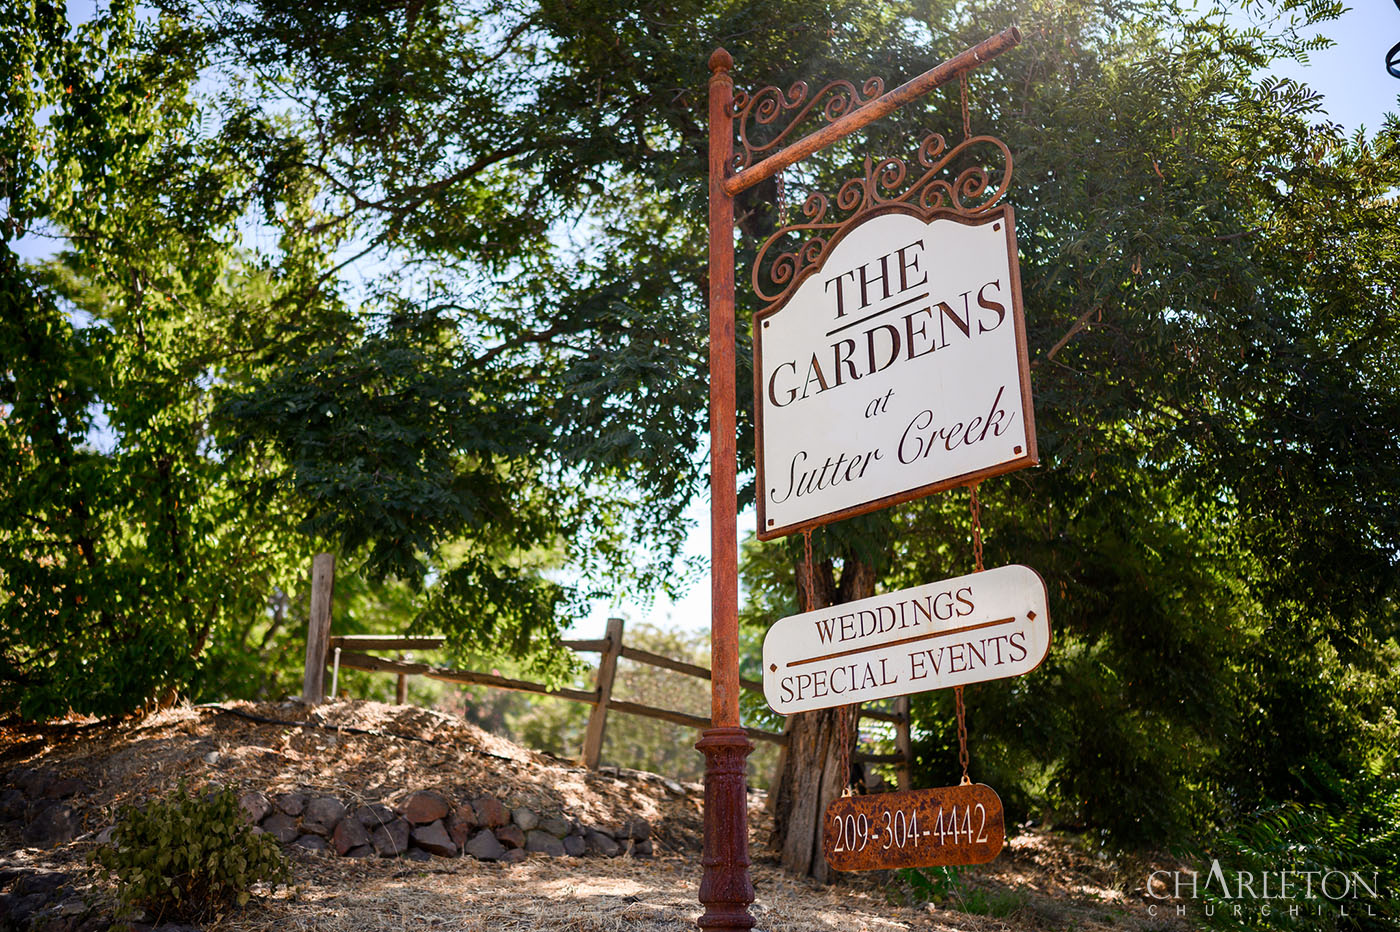 The gardens at sutter creek sign on hwy 49